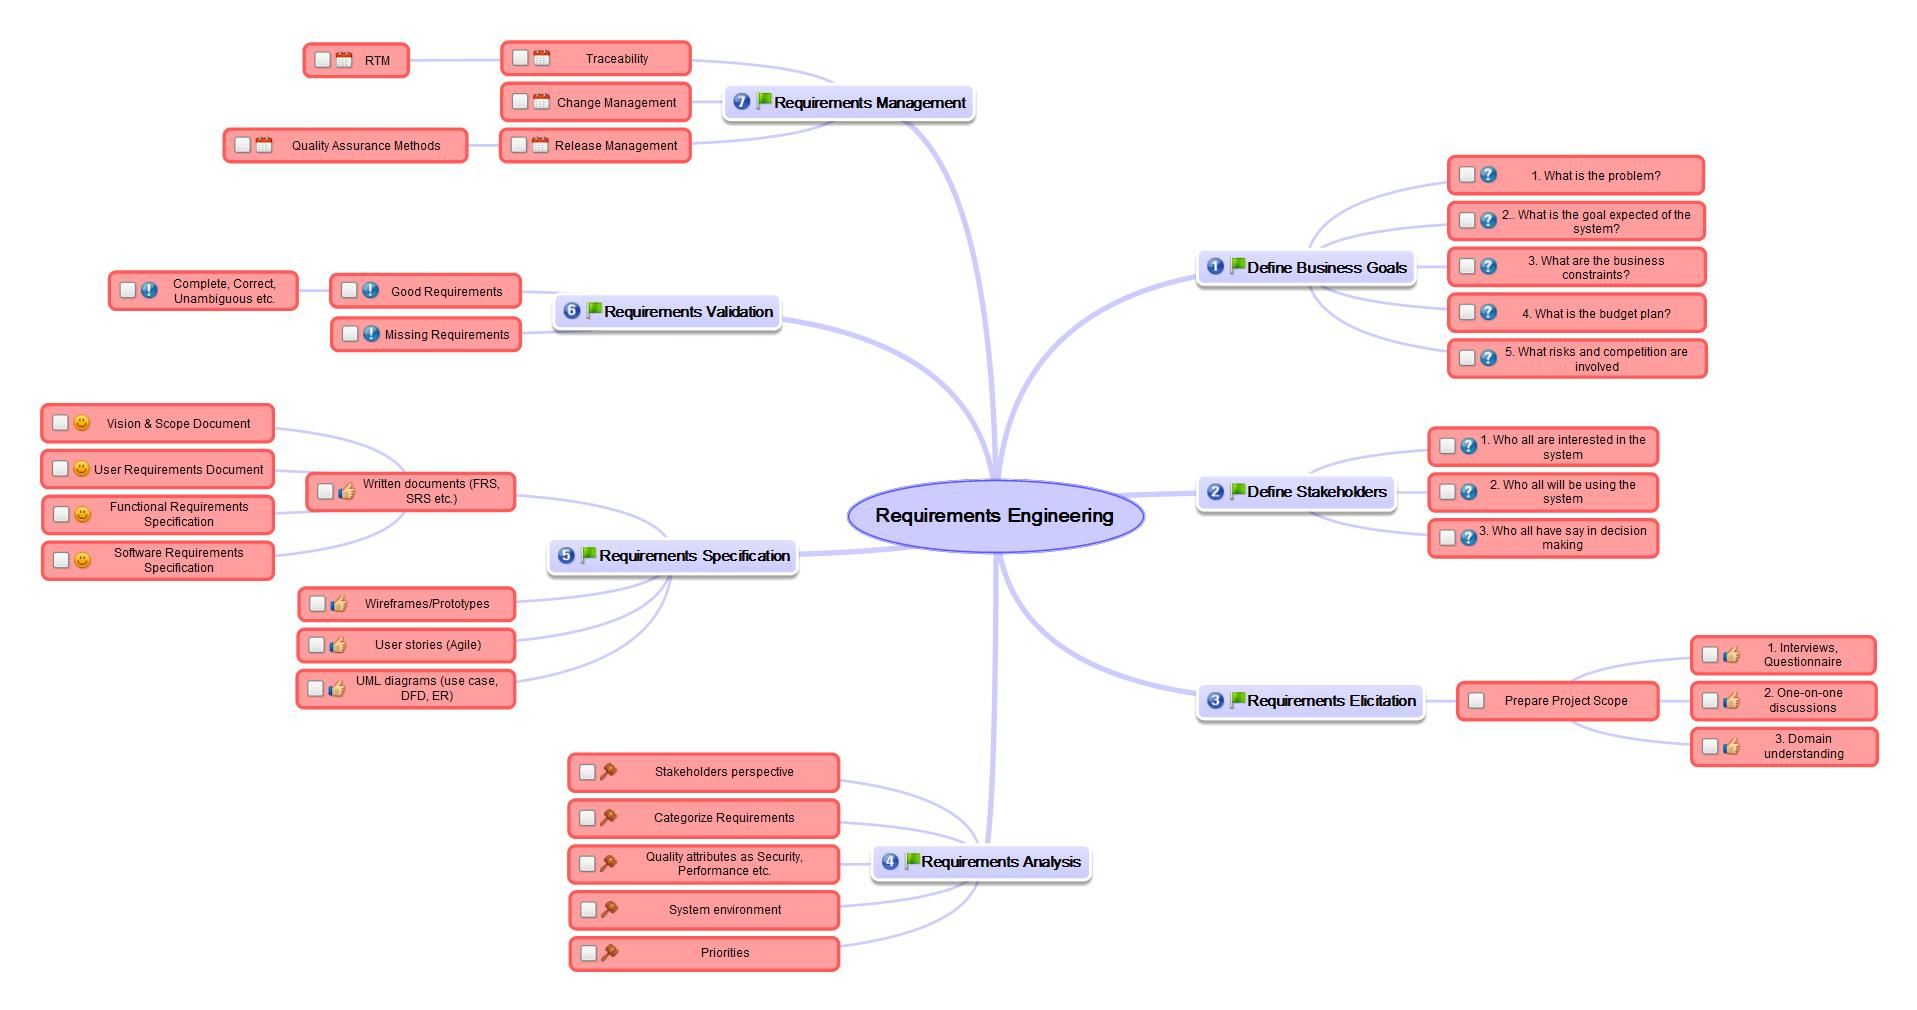 Requirements Engineering With Mind Maps Template From Our Business Club Webinar Www Biggerplate Com